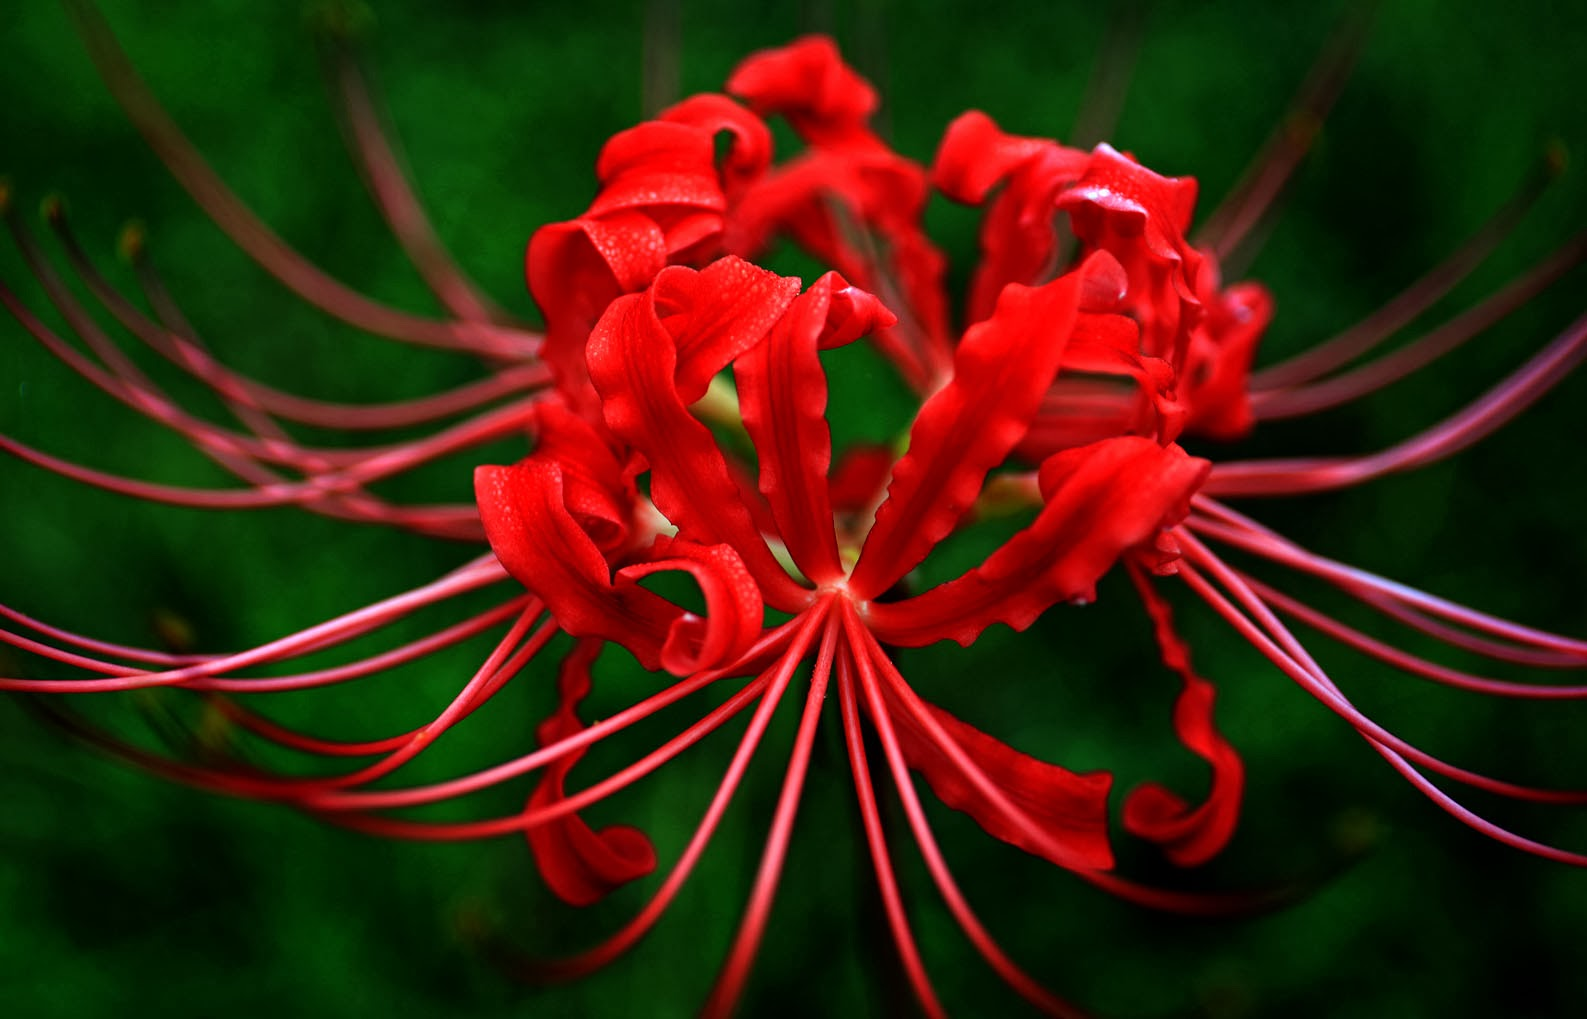 19 meaning of spider lily meaning lily spider of spider lily meaning of meaning bloom spider the when red lily spider flower lilies izmirmasajfo